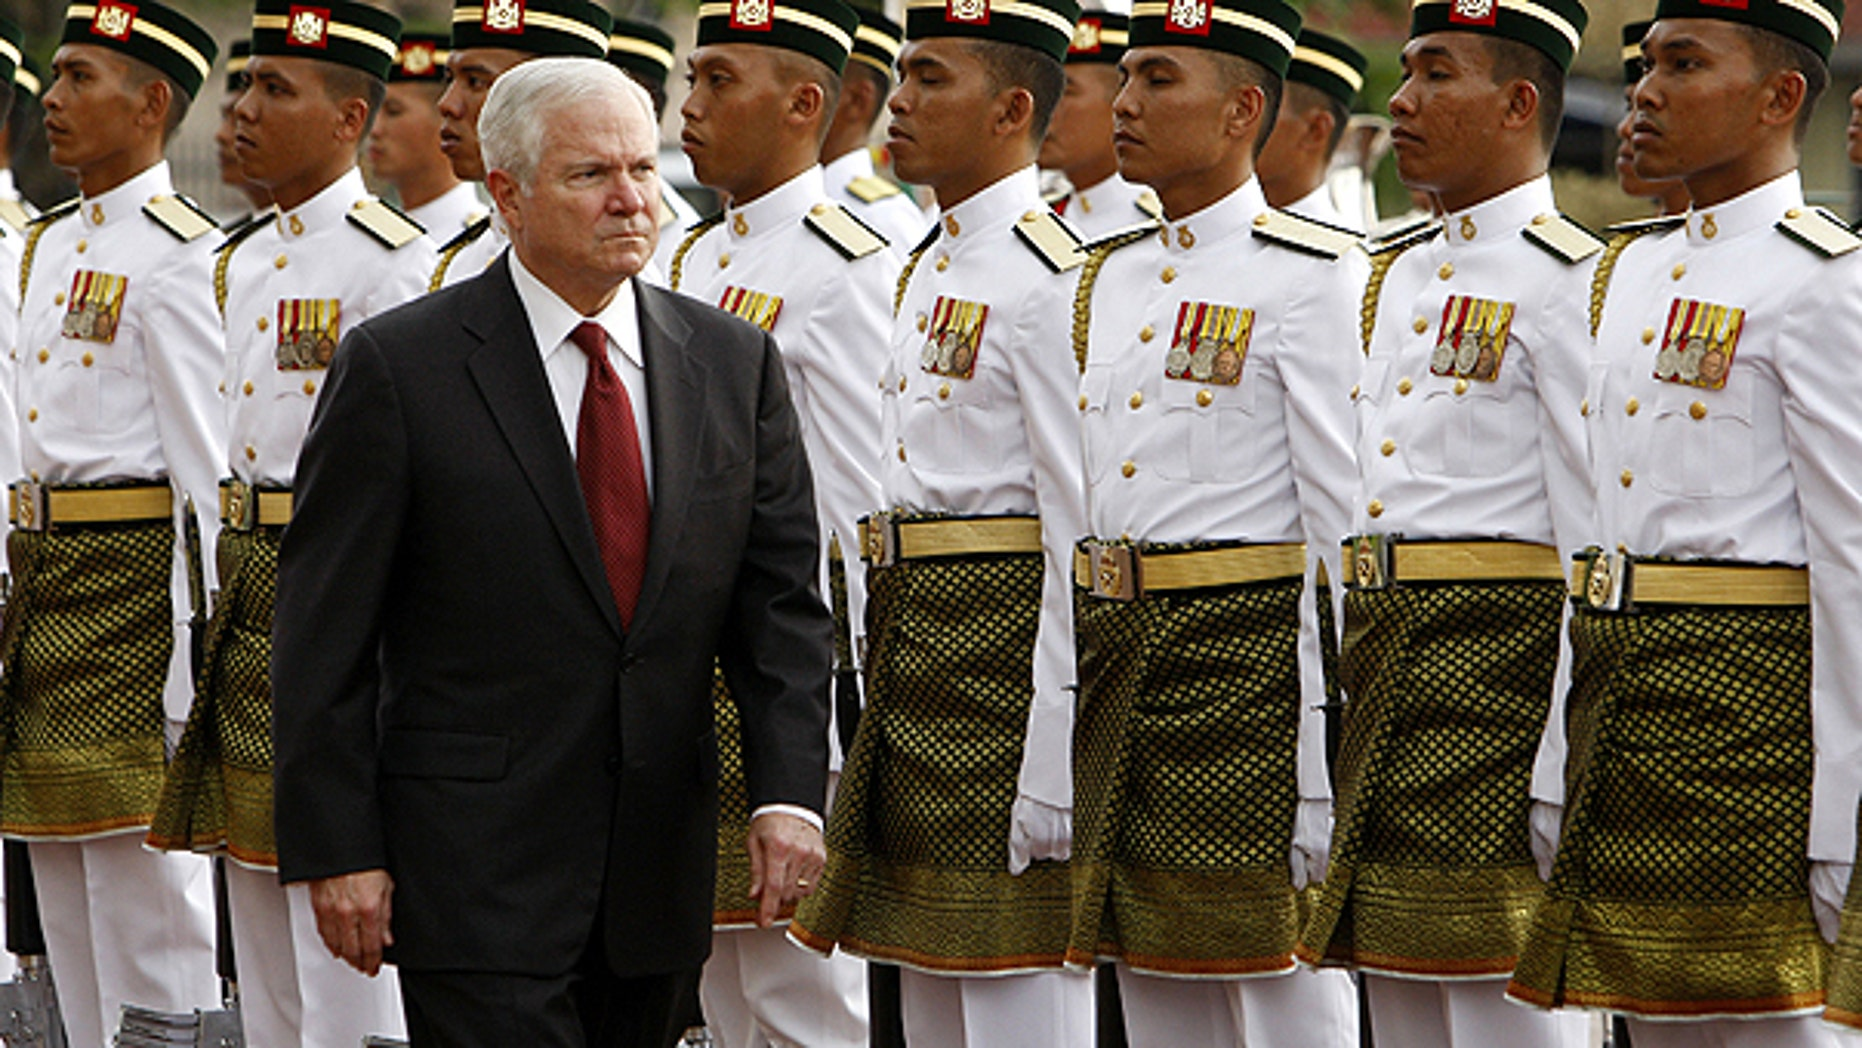 Nov. 9: Defense Secretary Robert Gates inspects the guard of honor during a welcoming ceremony at Malaysia's Ministry of Defense in Kuala Lumpur, Malaysia.